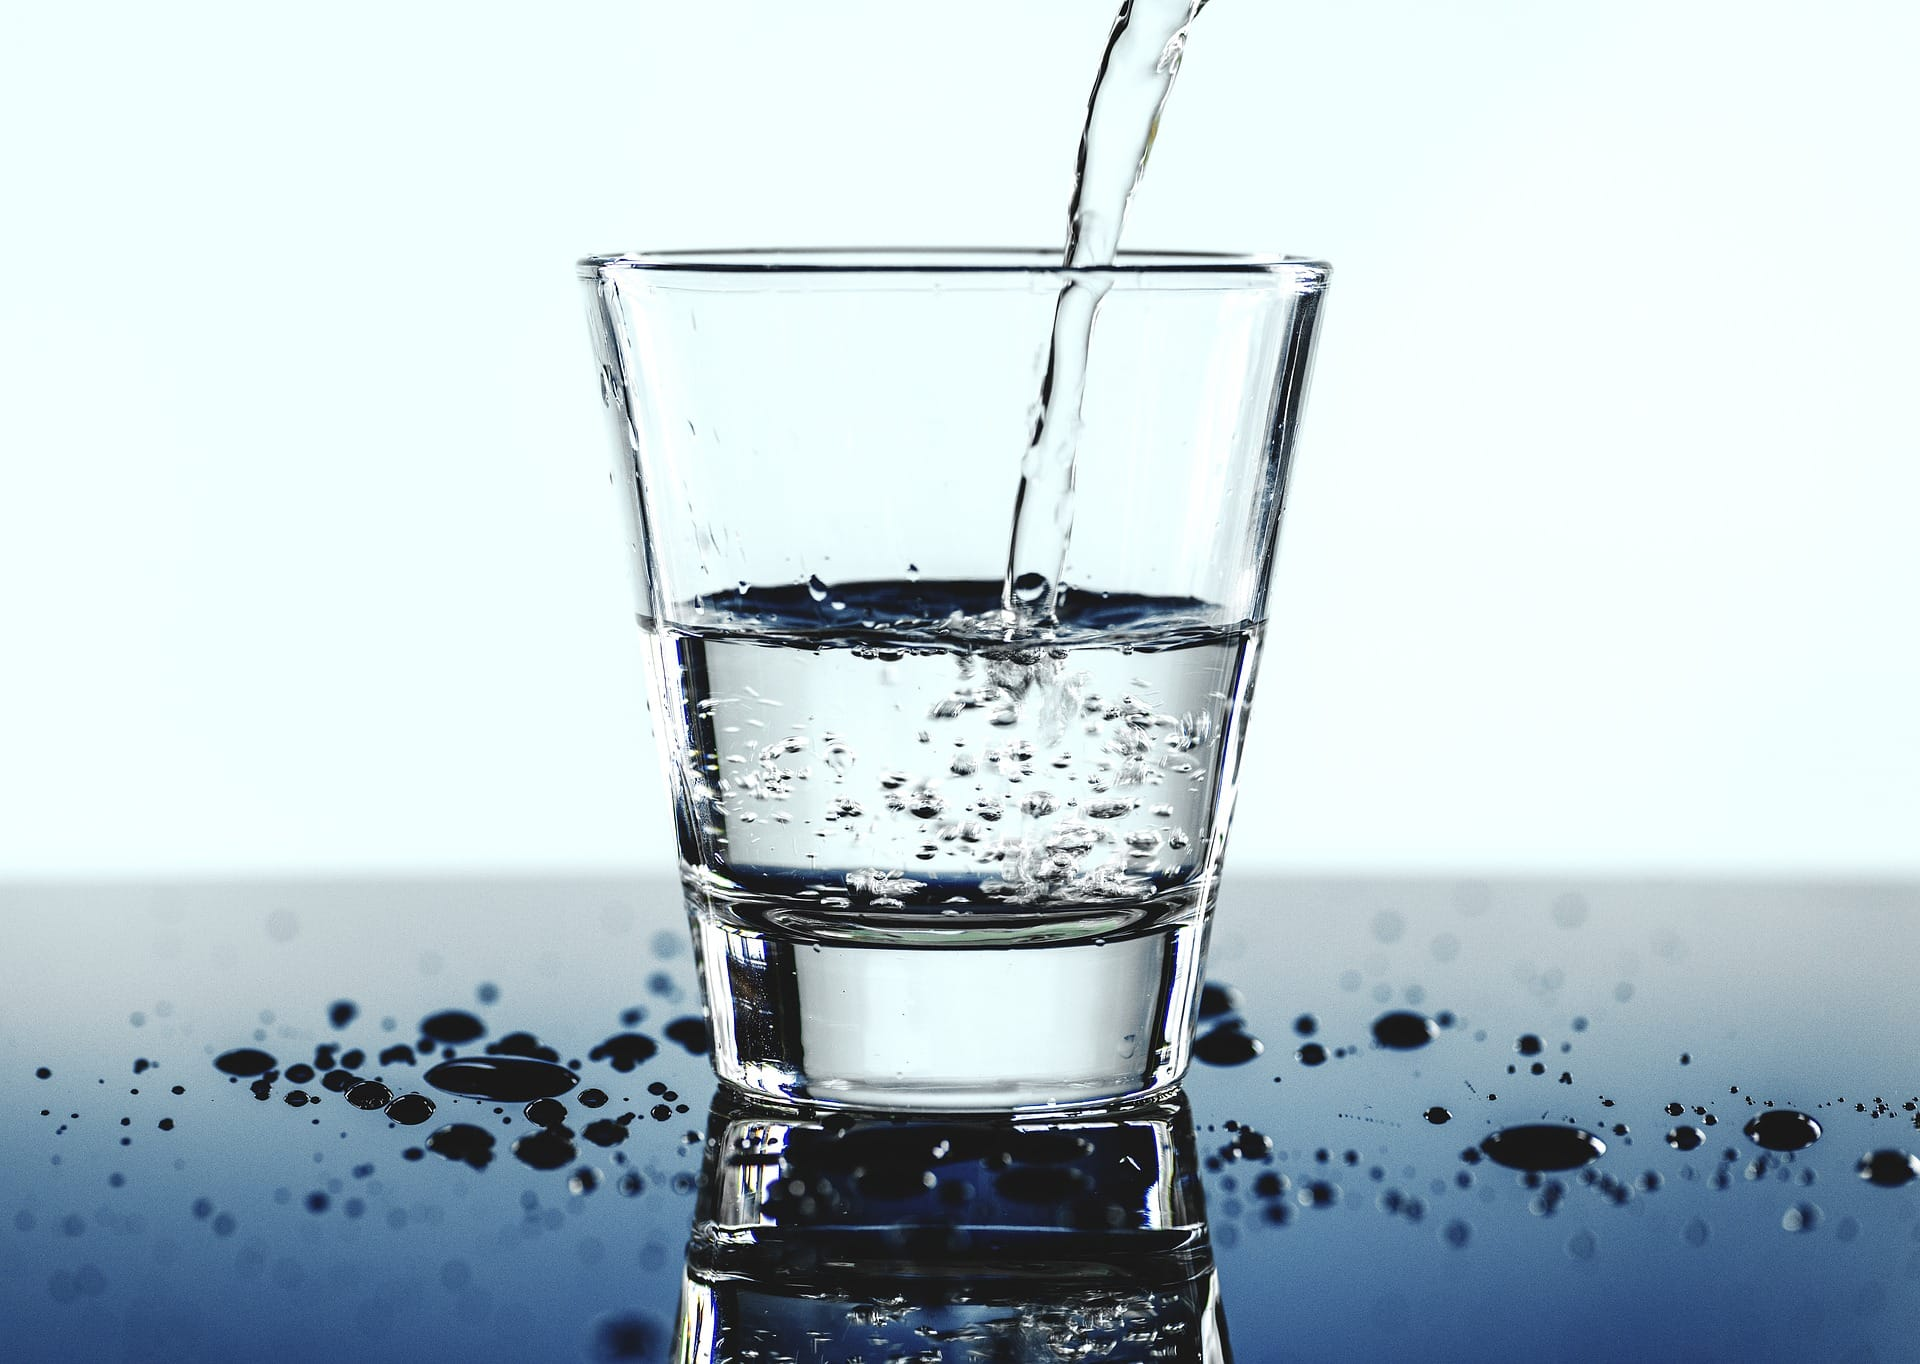 Do you own a well? Test que quality of your drinking water.